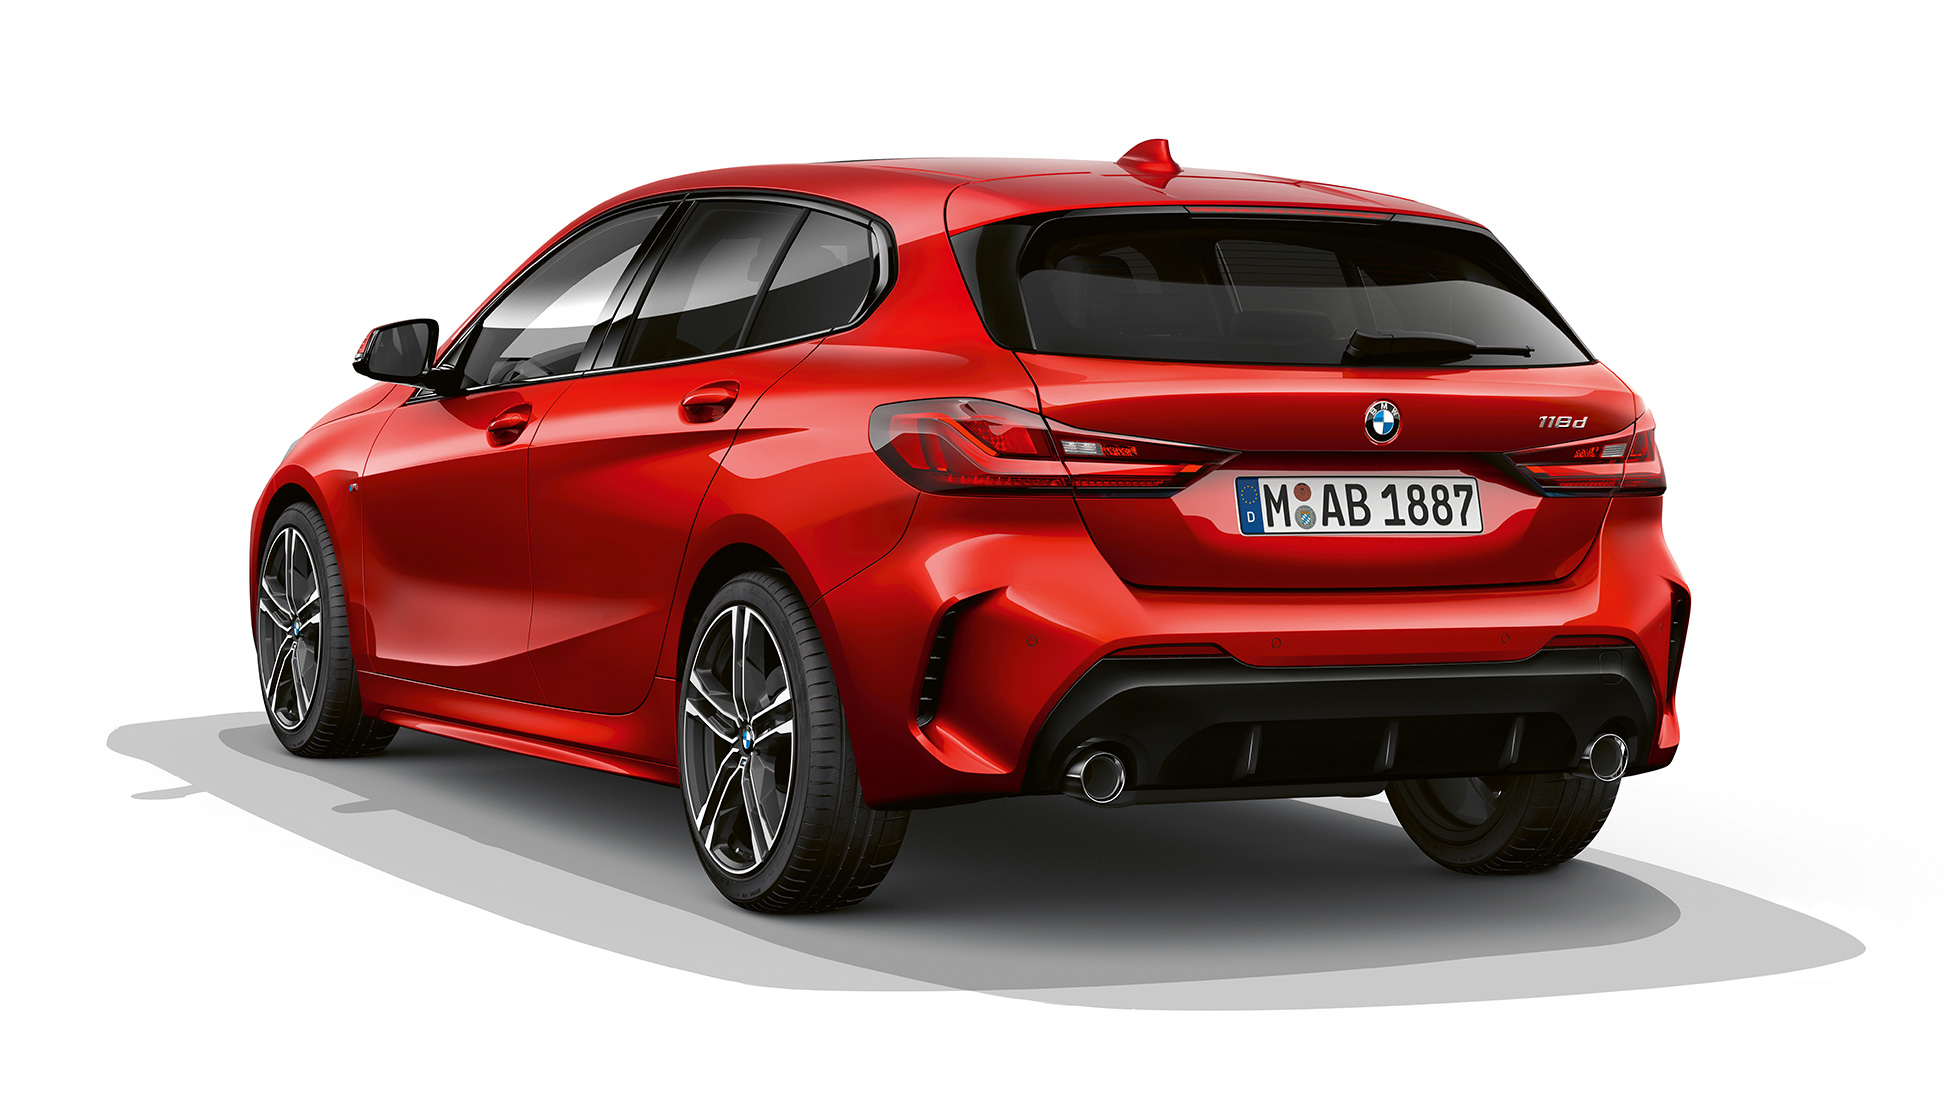 Bmw 1 Series Details And Technical Data Bmw Com Mt